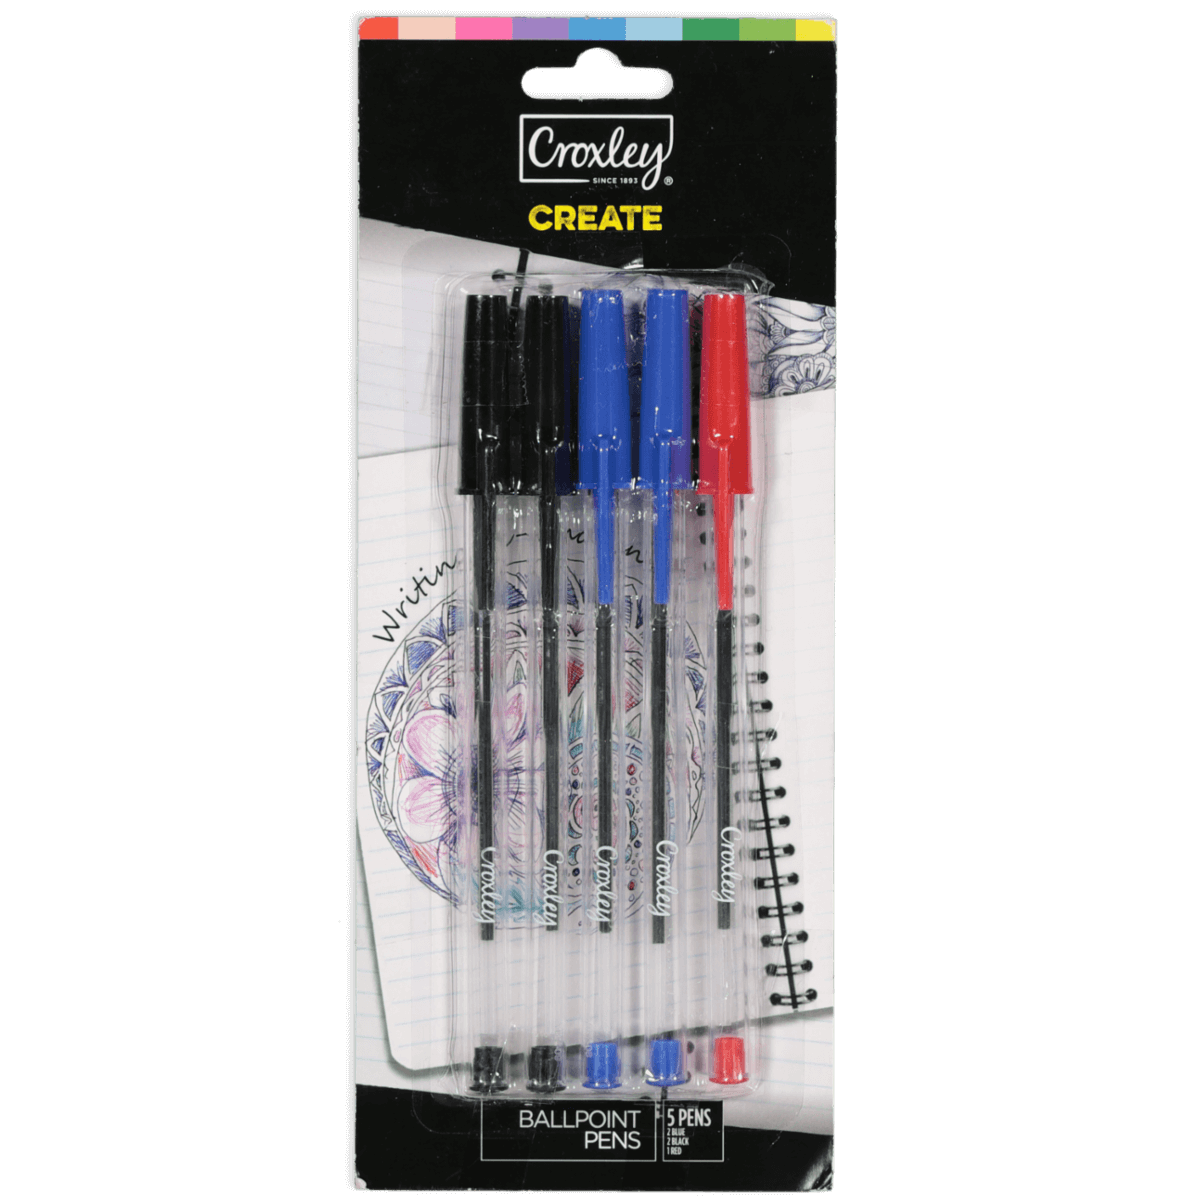 Croxley Ball Point Pens | 5 pack